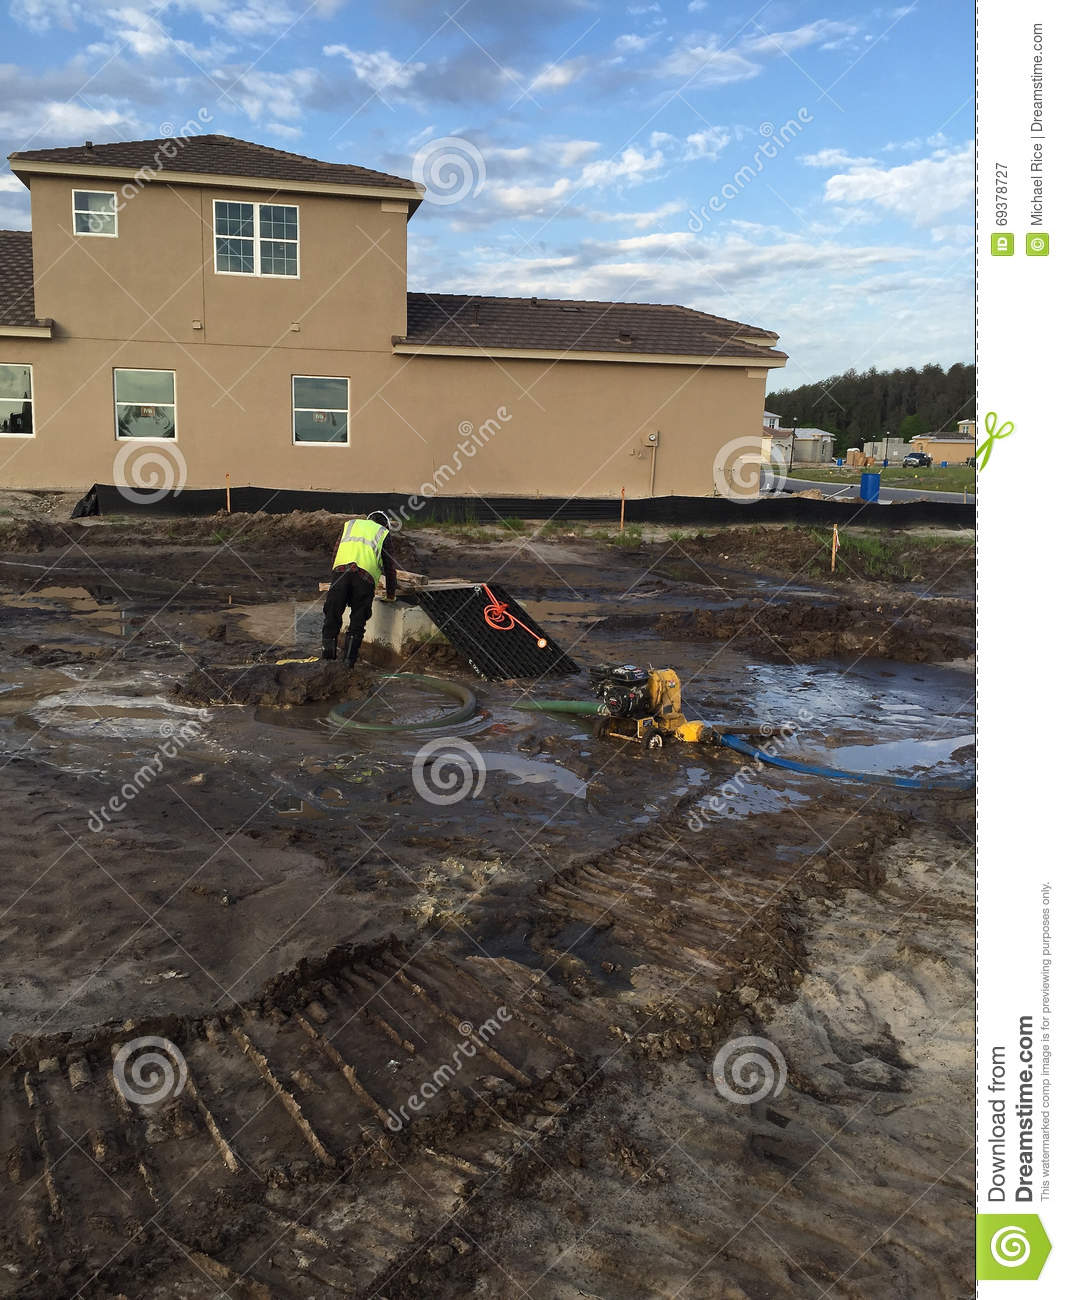 Man pumping water for underground work in dirt construction site royalty free stock photo sciox Gallery